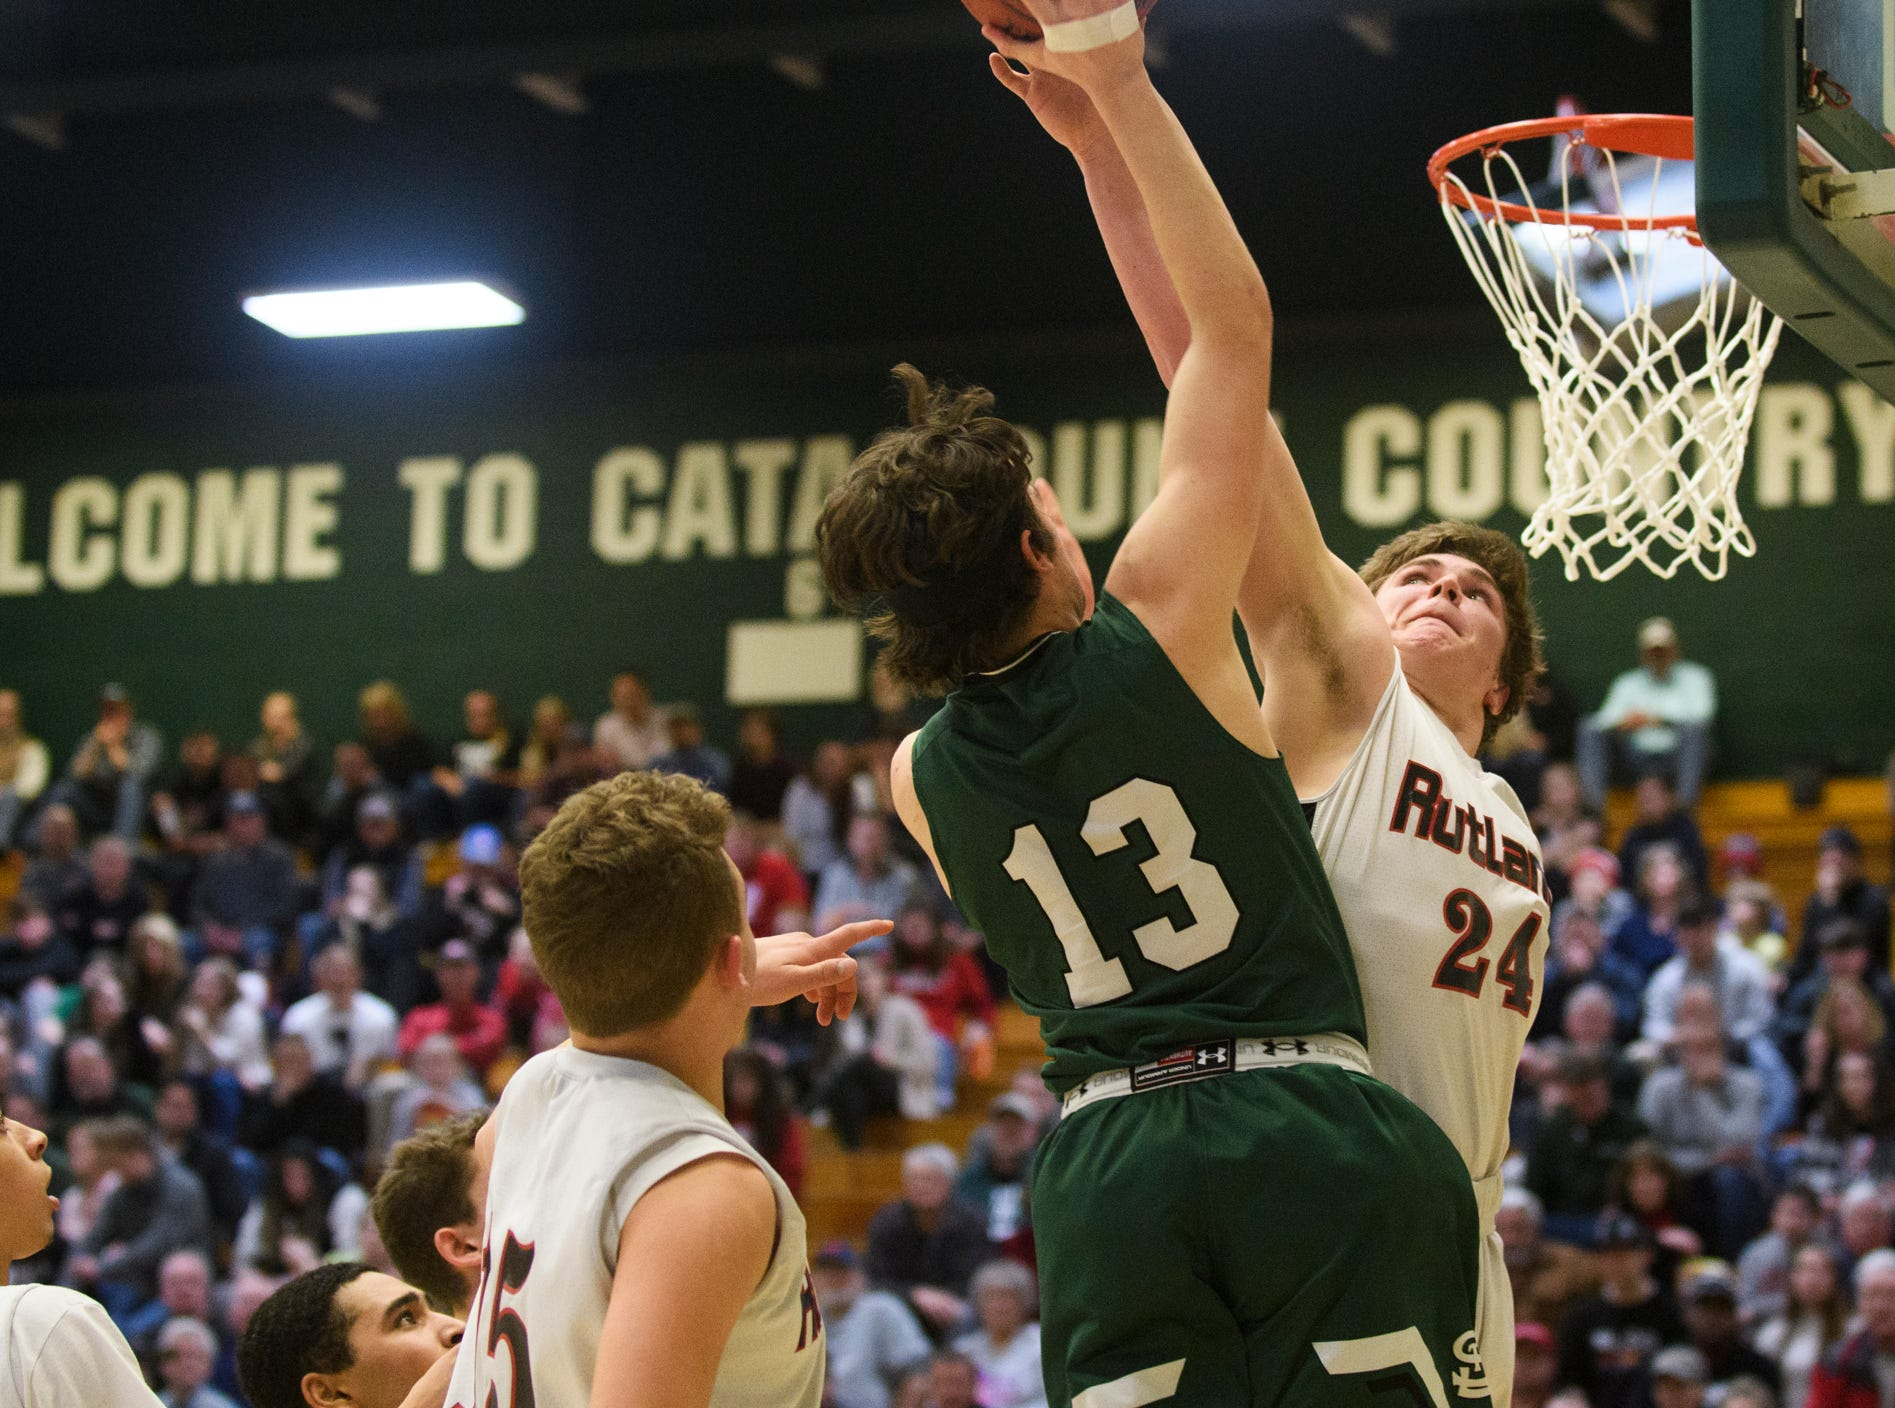 St. Johnsbury's Alex Carlisle (13) leaps to shoot the ball over Rutland's Jacob Lorman (24) during the DI boys basketball championship game between the St. Johnsbury Hilltoppers and the Rutland Raiders at Patrick Gym on Sunday afternoon March 17, 2019 in Burlington, Vermont.